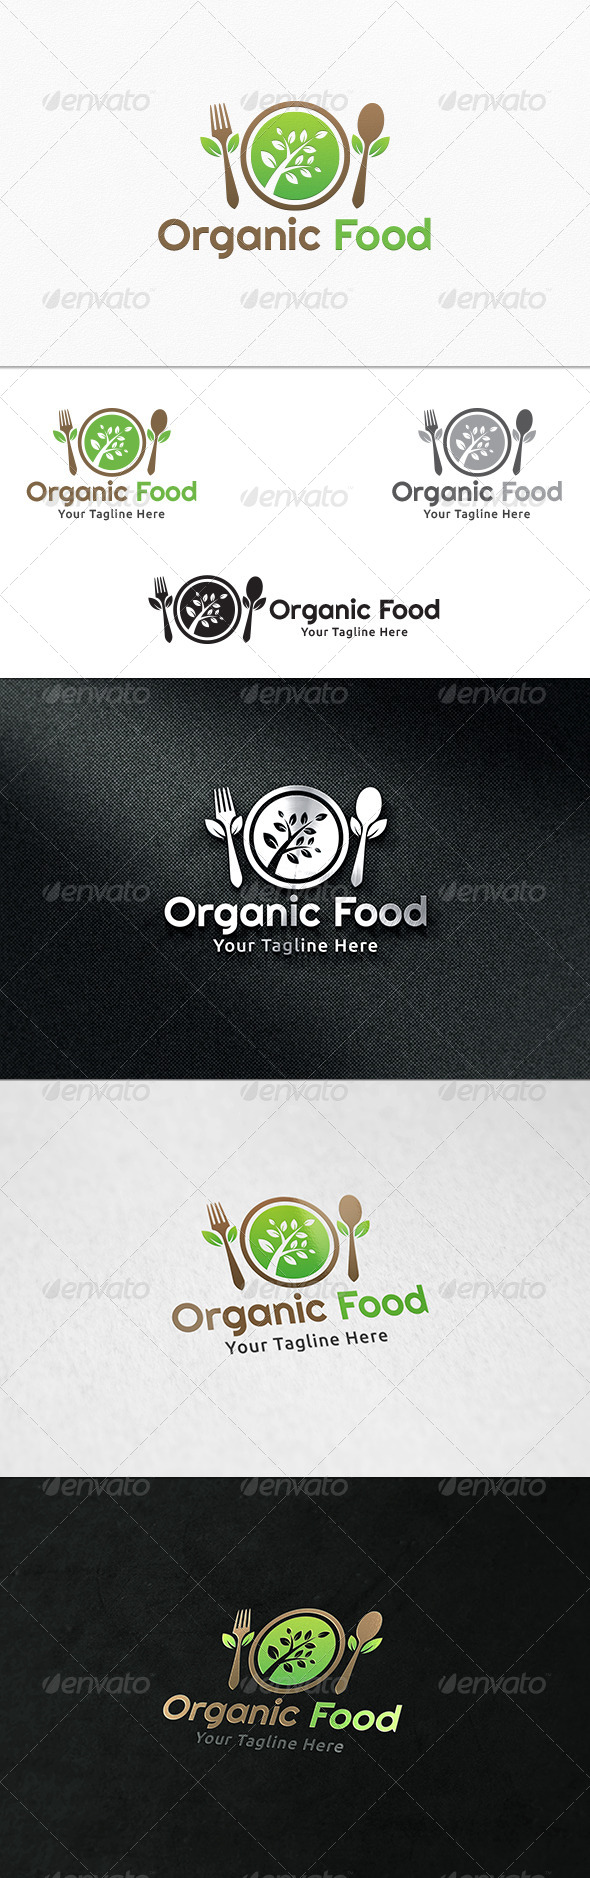 GraphicRiver Organic Food Logo Template 8082501